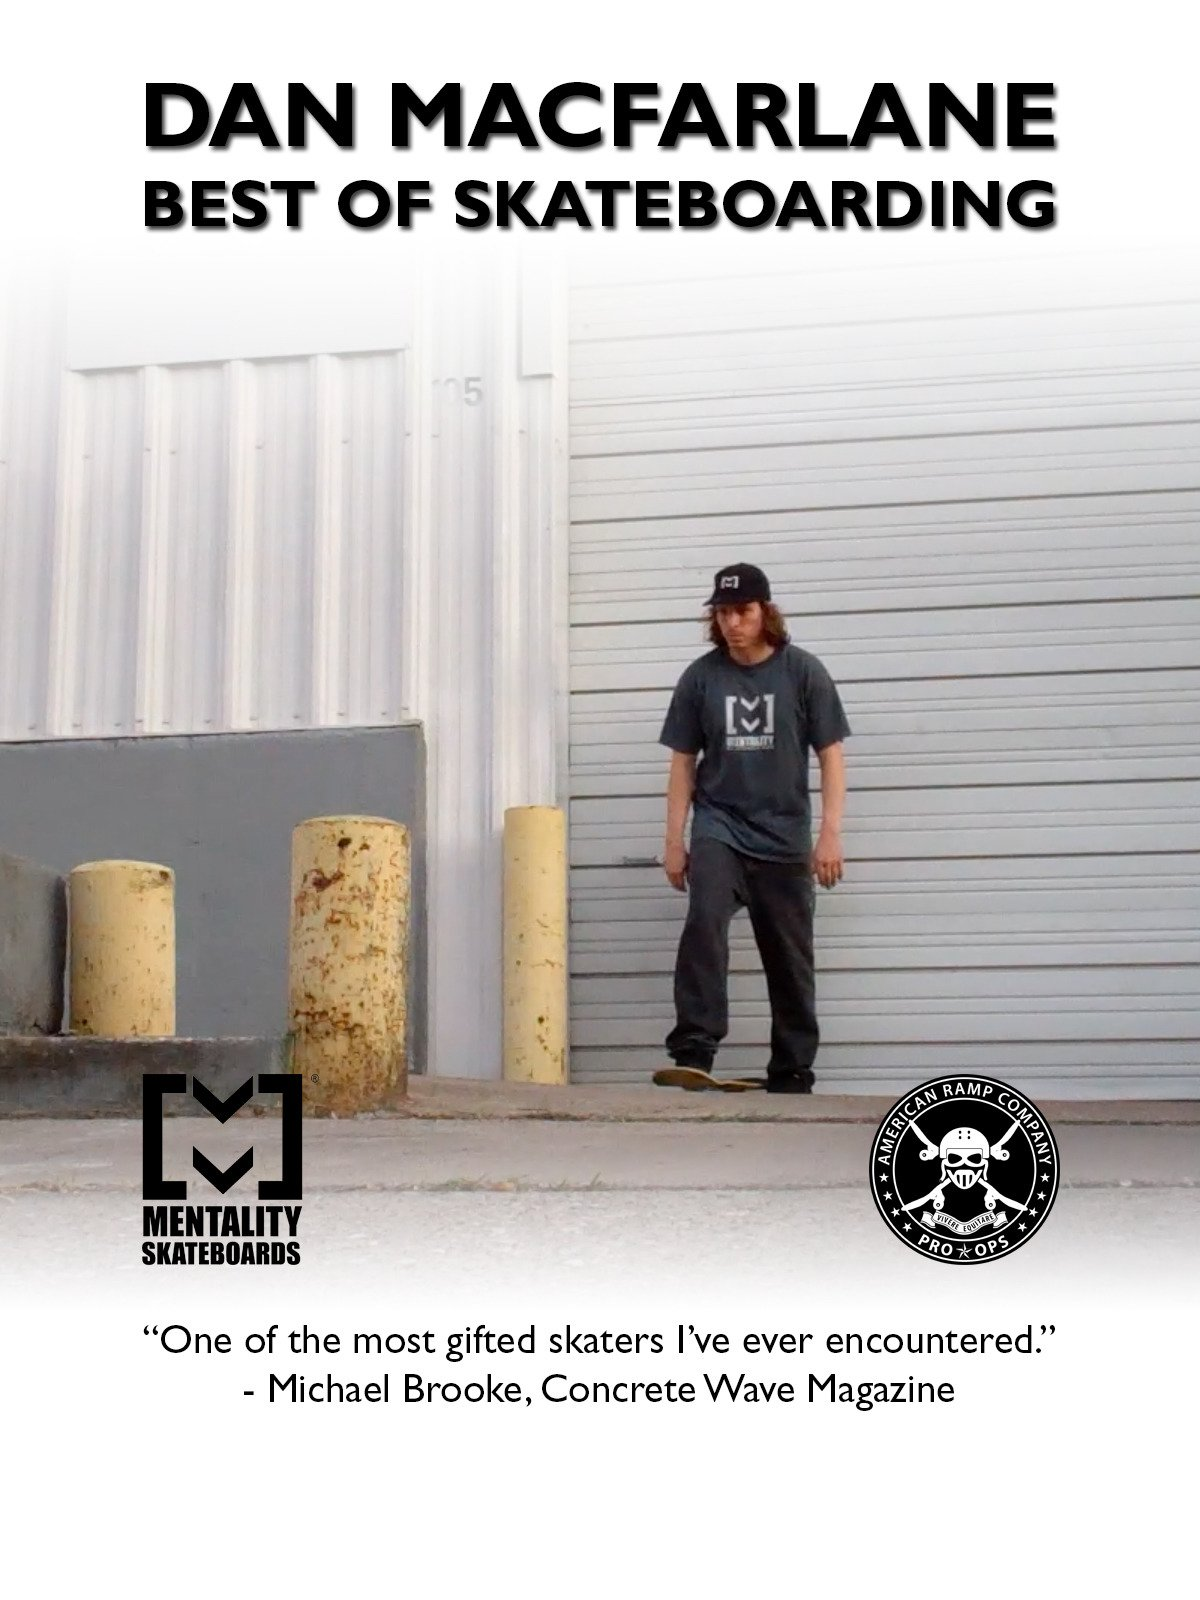 Dan MacFarlane Best Of Skateboarding